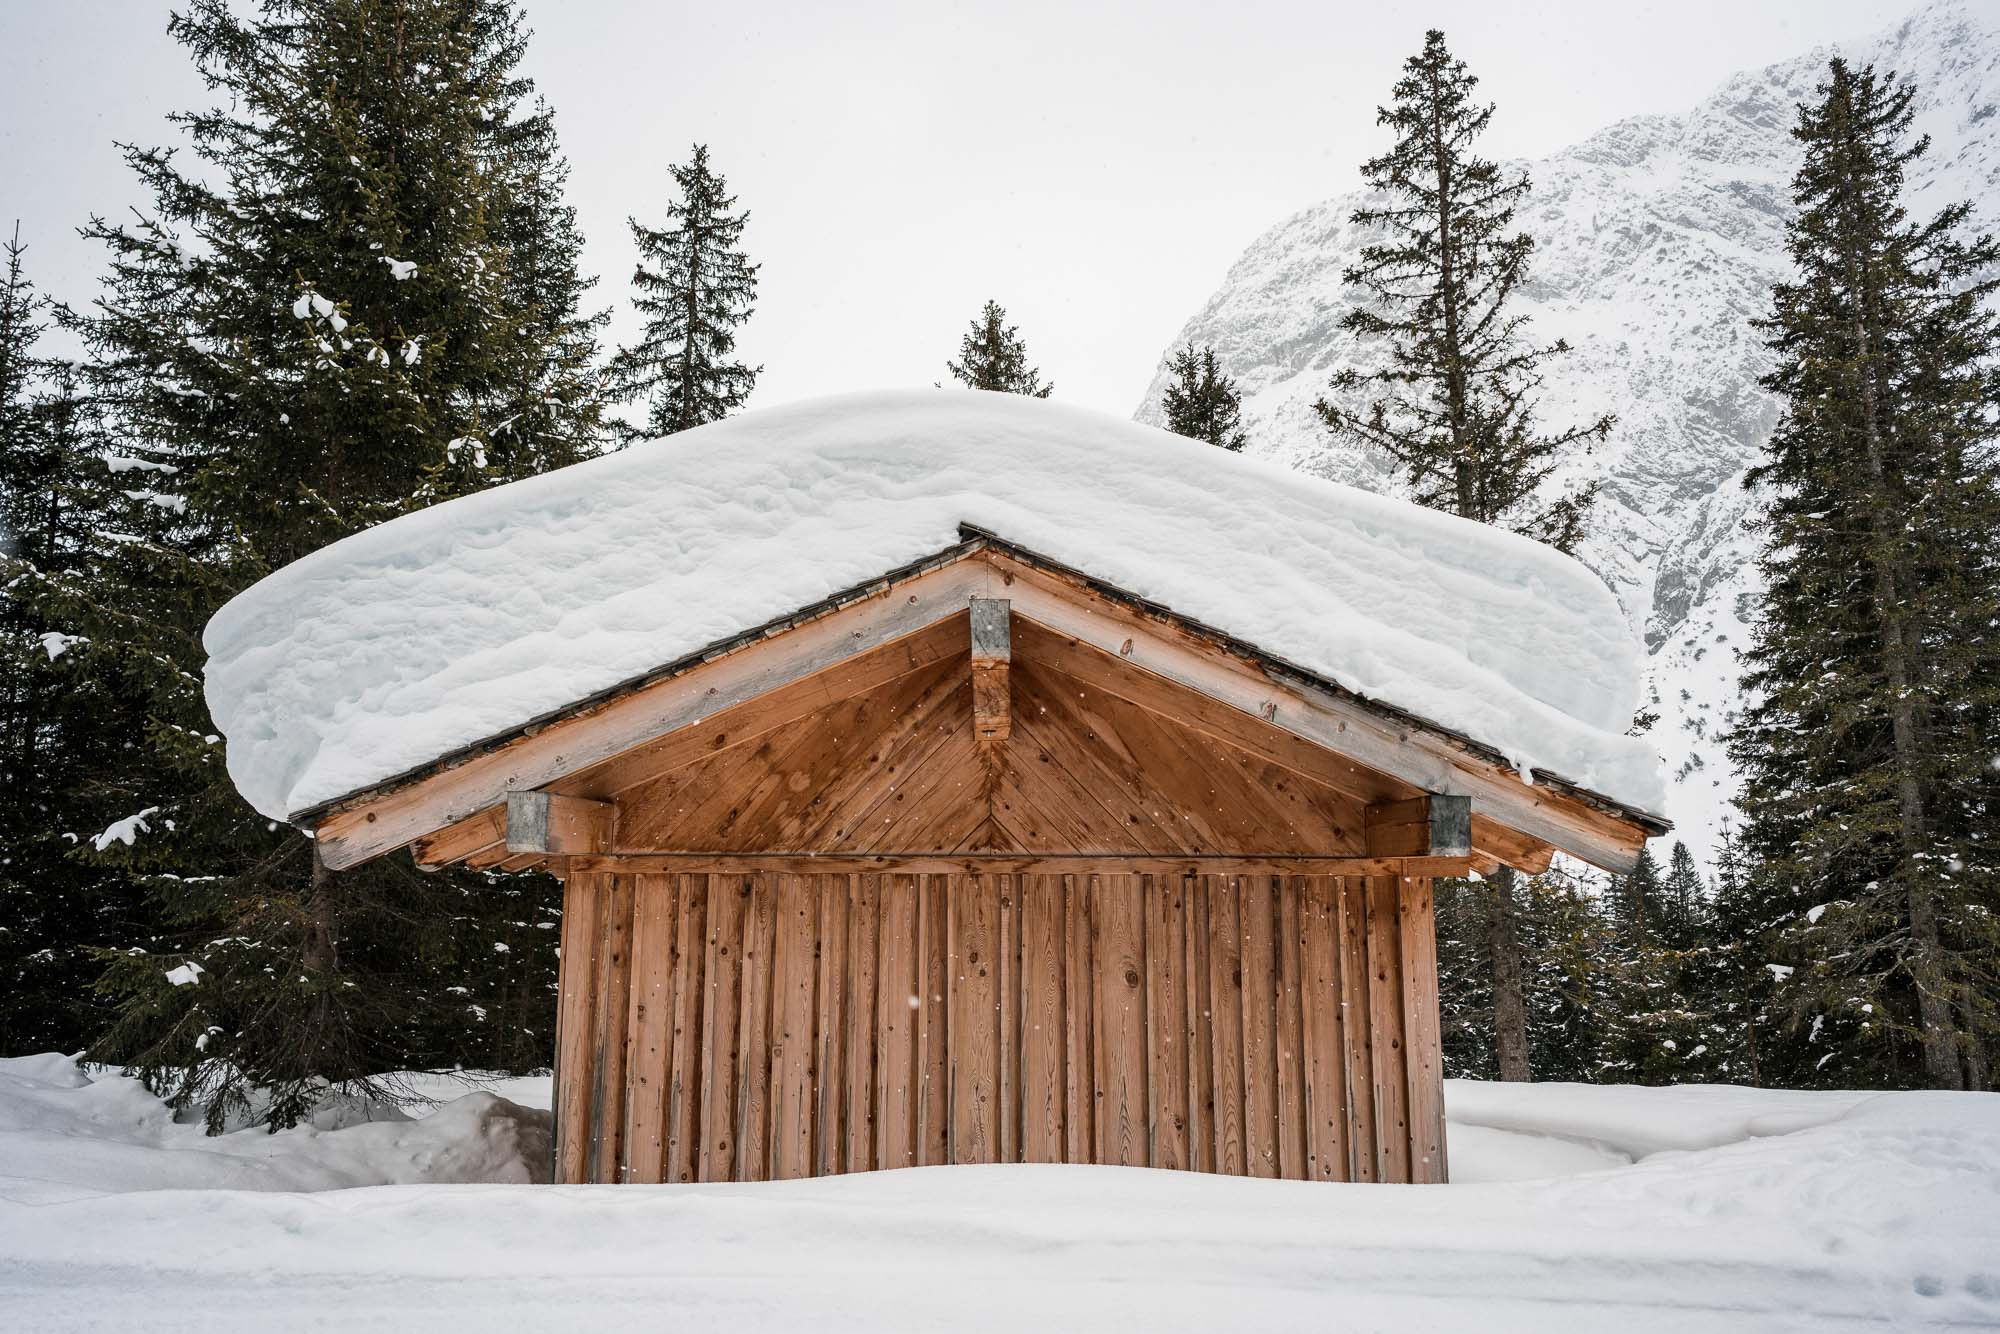 Snow covered cabins in Lech Austria Ski Town